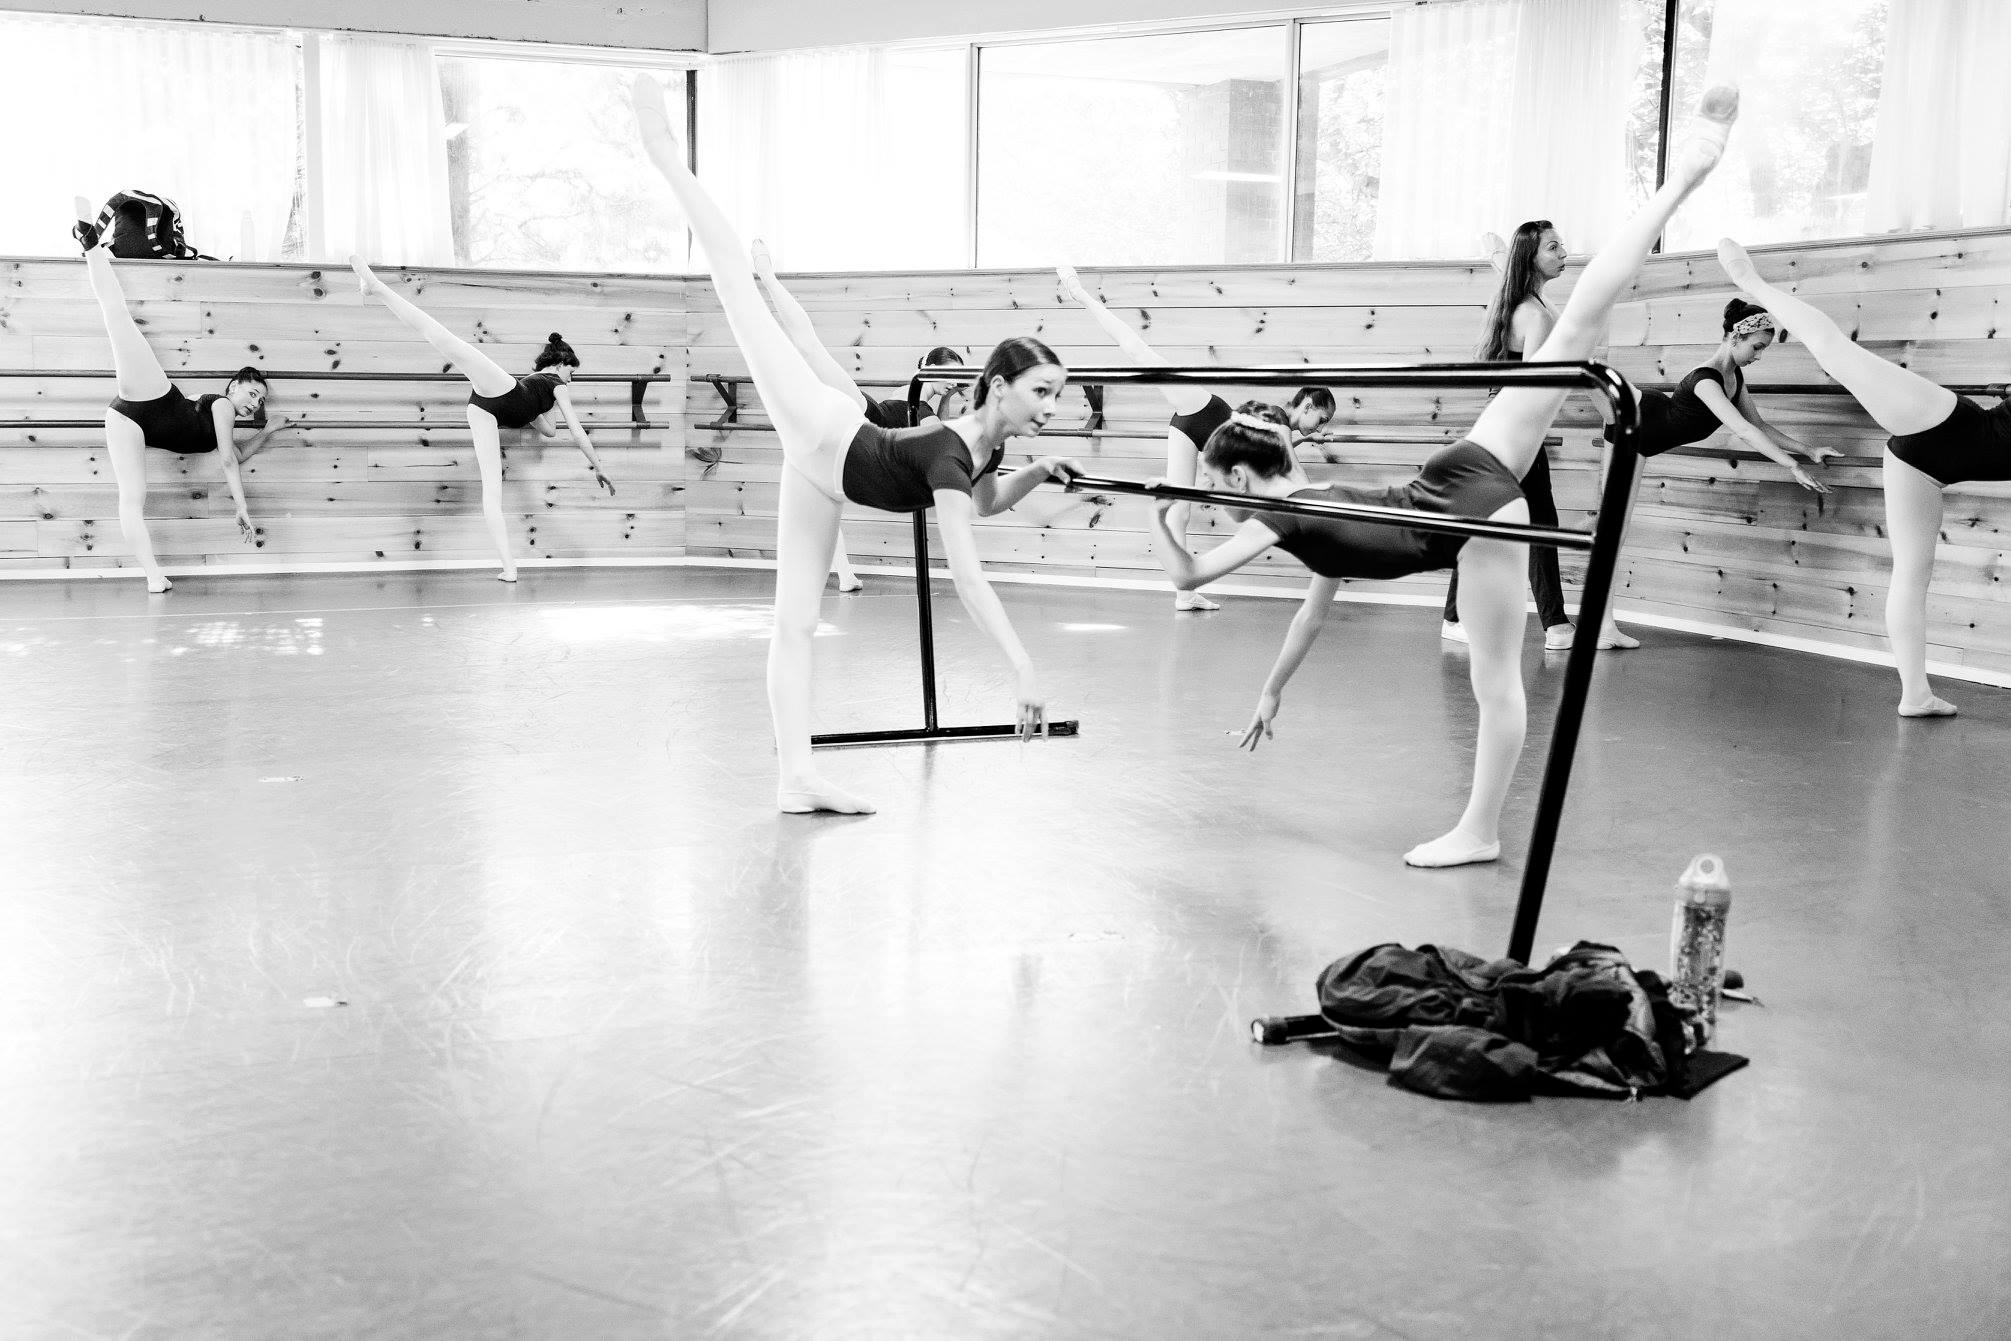 Photo by in house photographer Sori Gottdenker of Mrs Mishoe correcting a student in the dance studio during her Intermediate level Ballet class